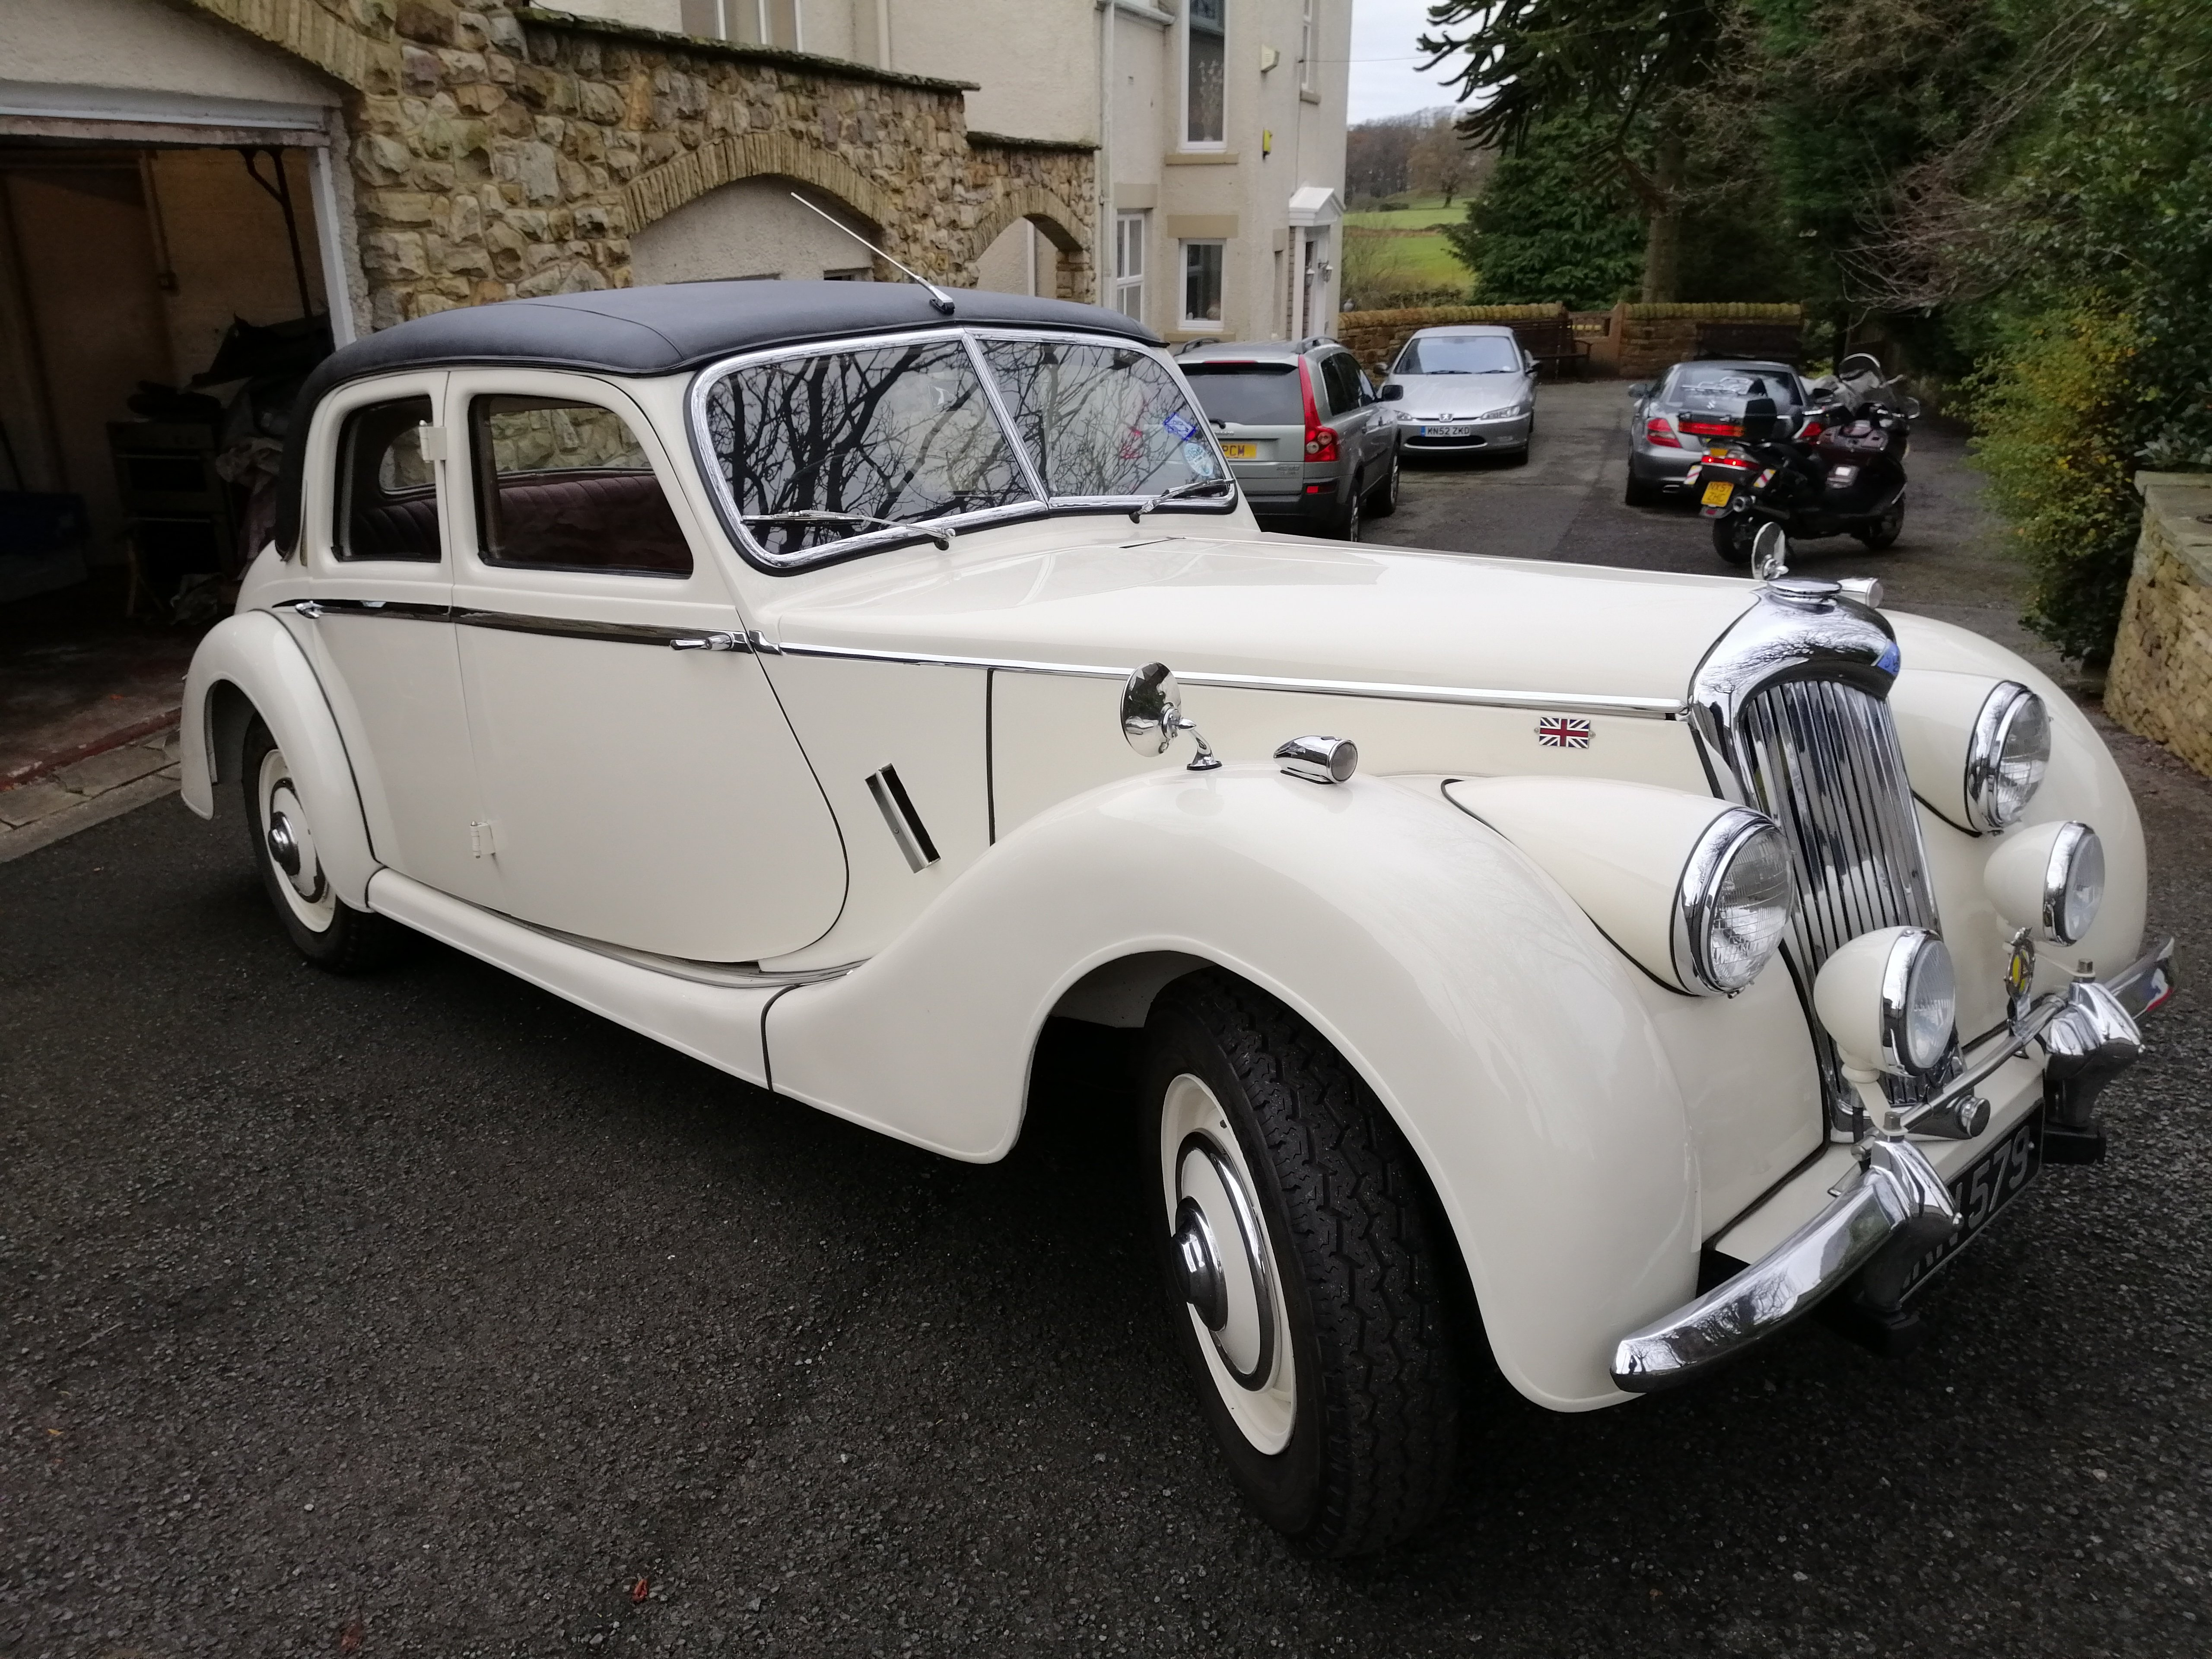 1949 Riley classic full restoration For Sale (picture 1 of 5)